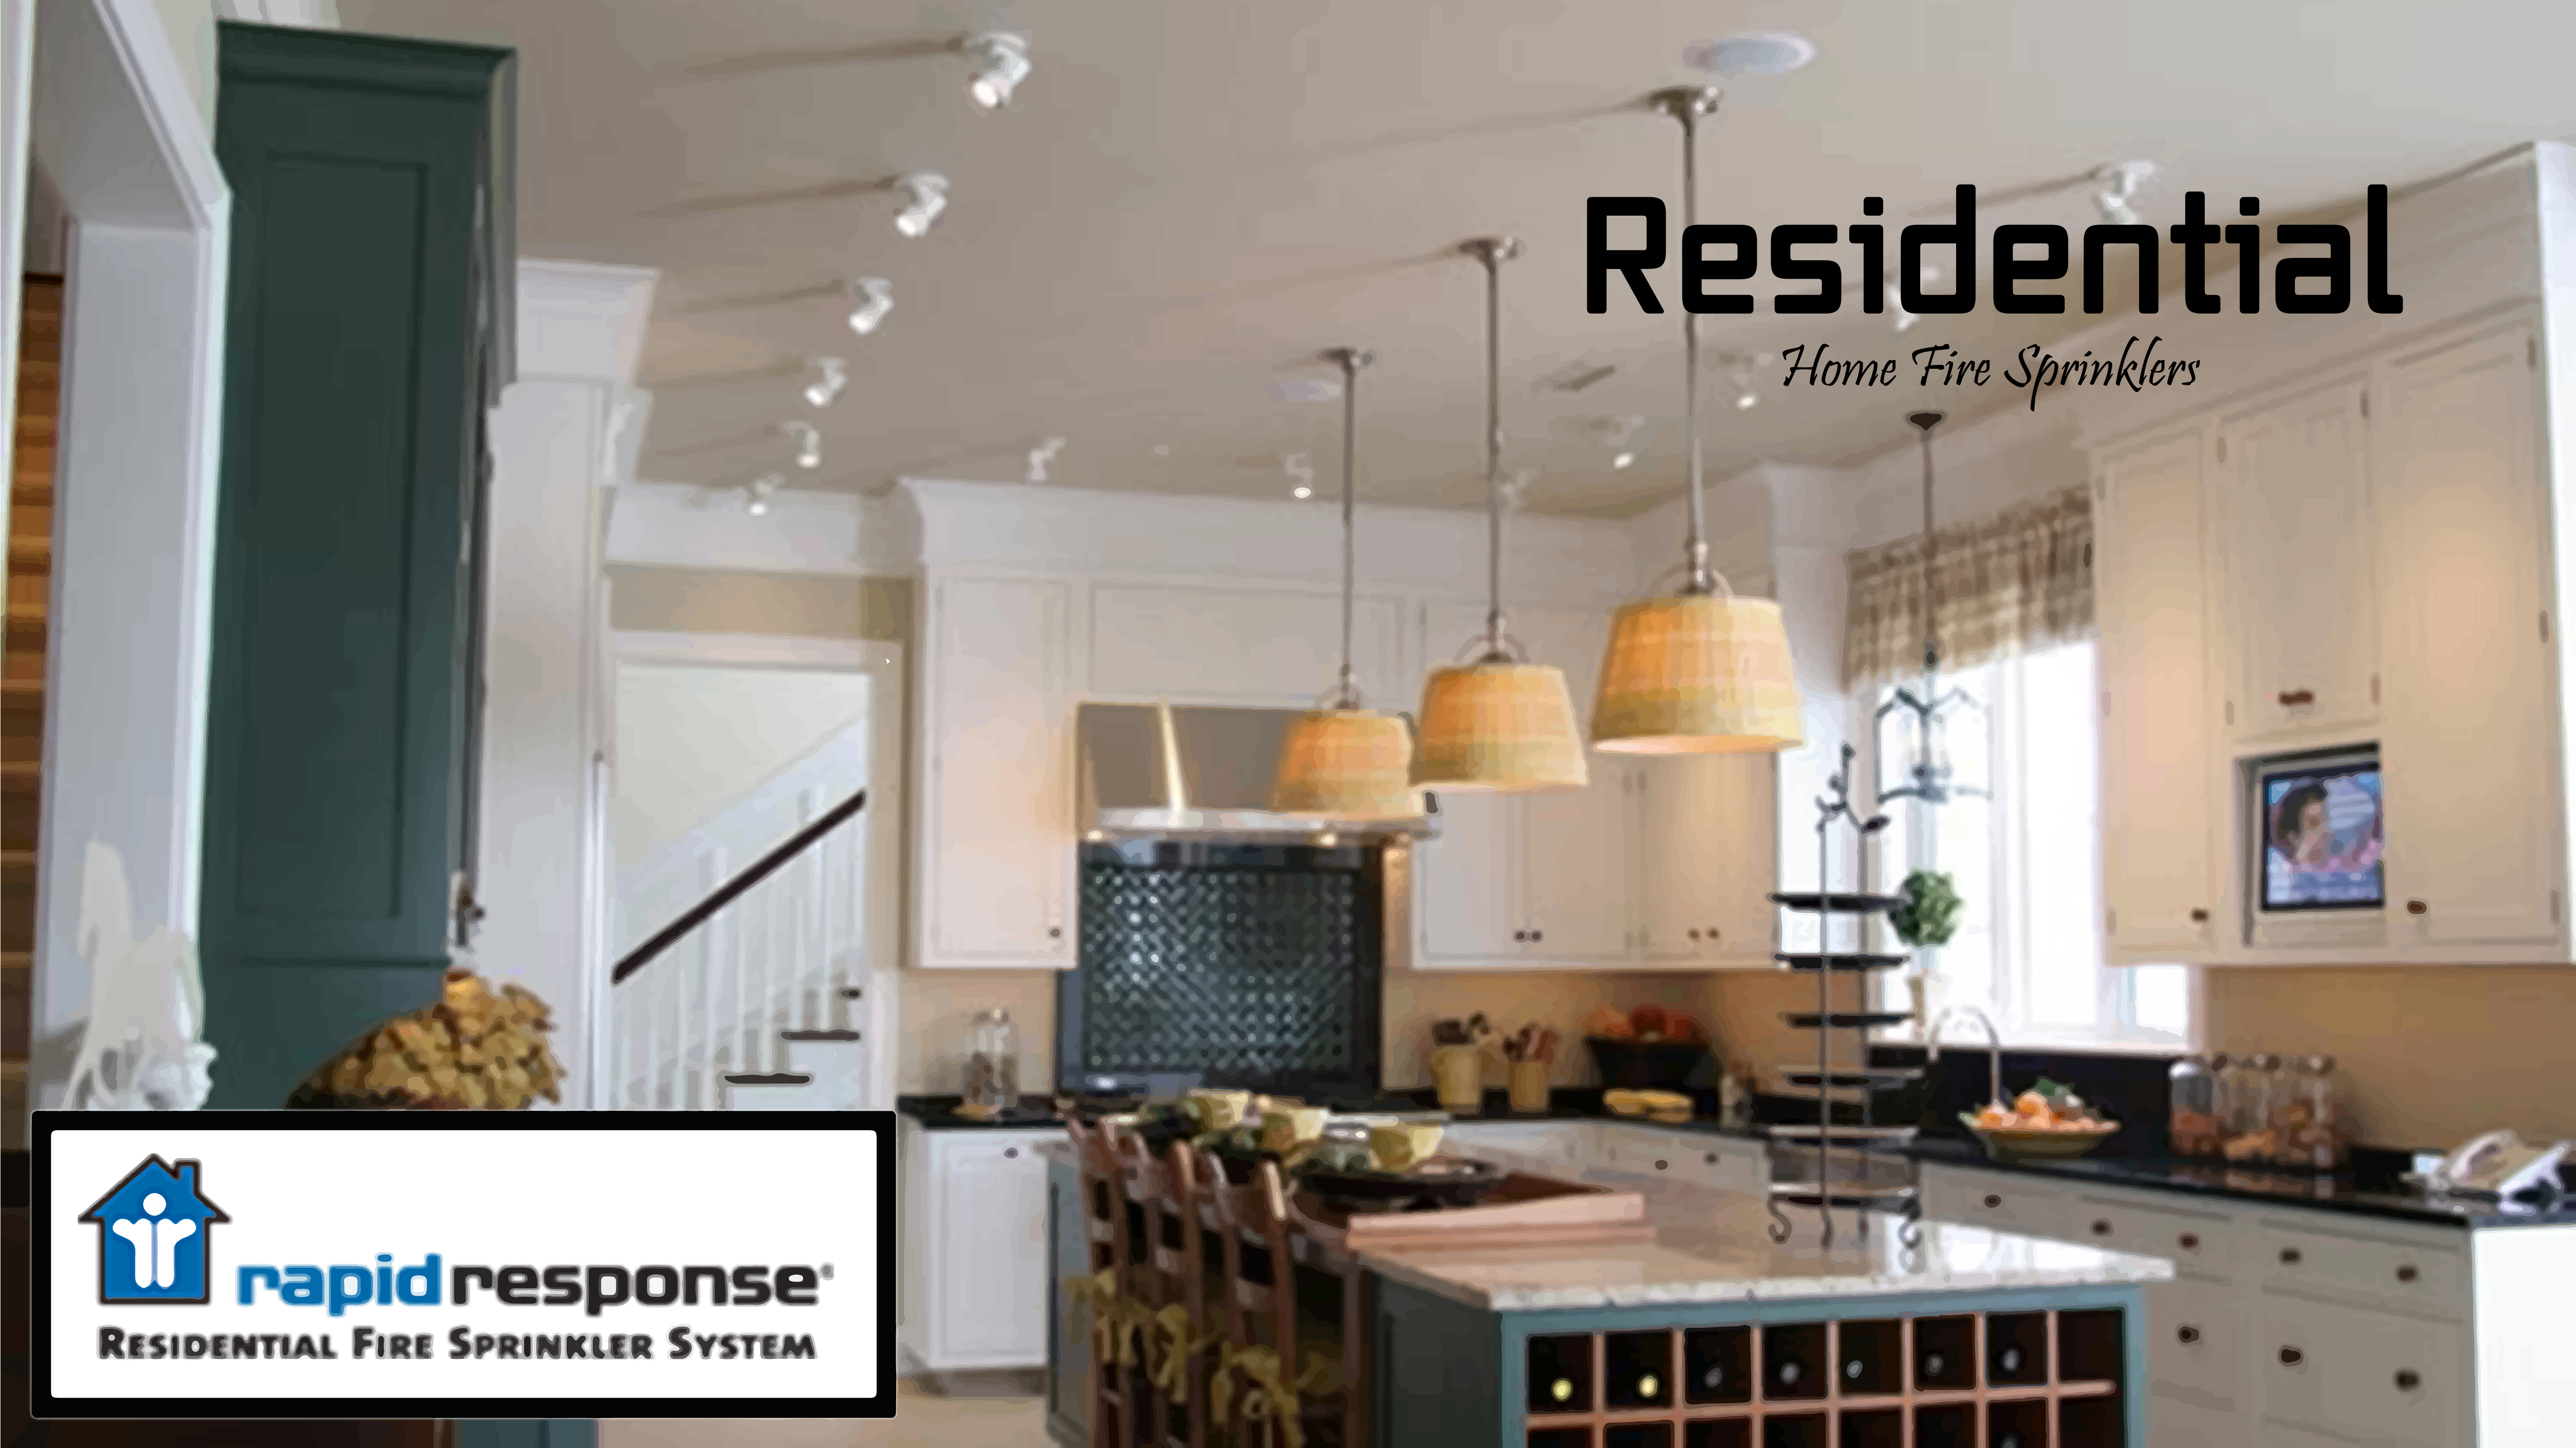 Residential Fire Sprinkler Services in Los Angeles, California